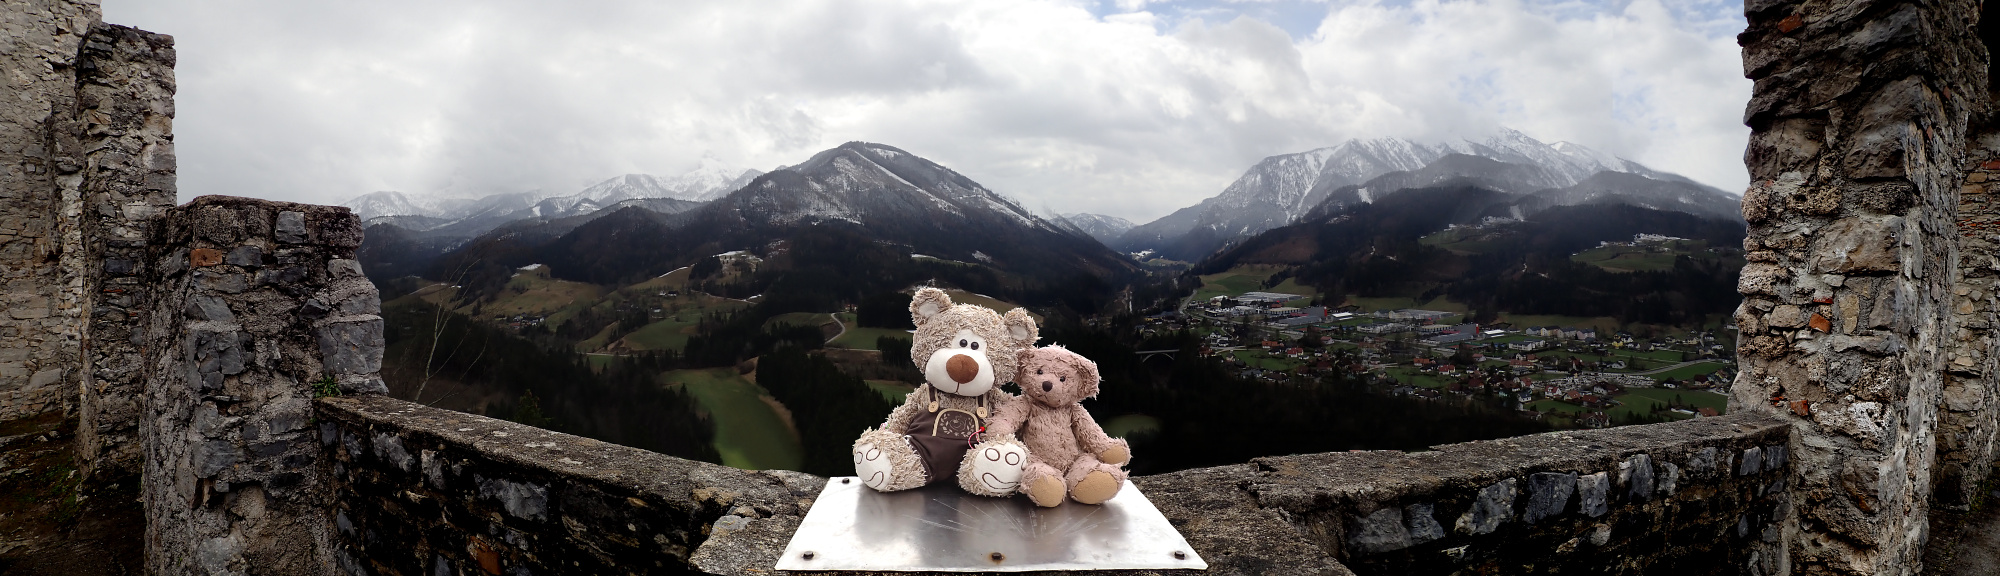 Teddy Land: Burg Gallenstein panorama